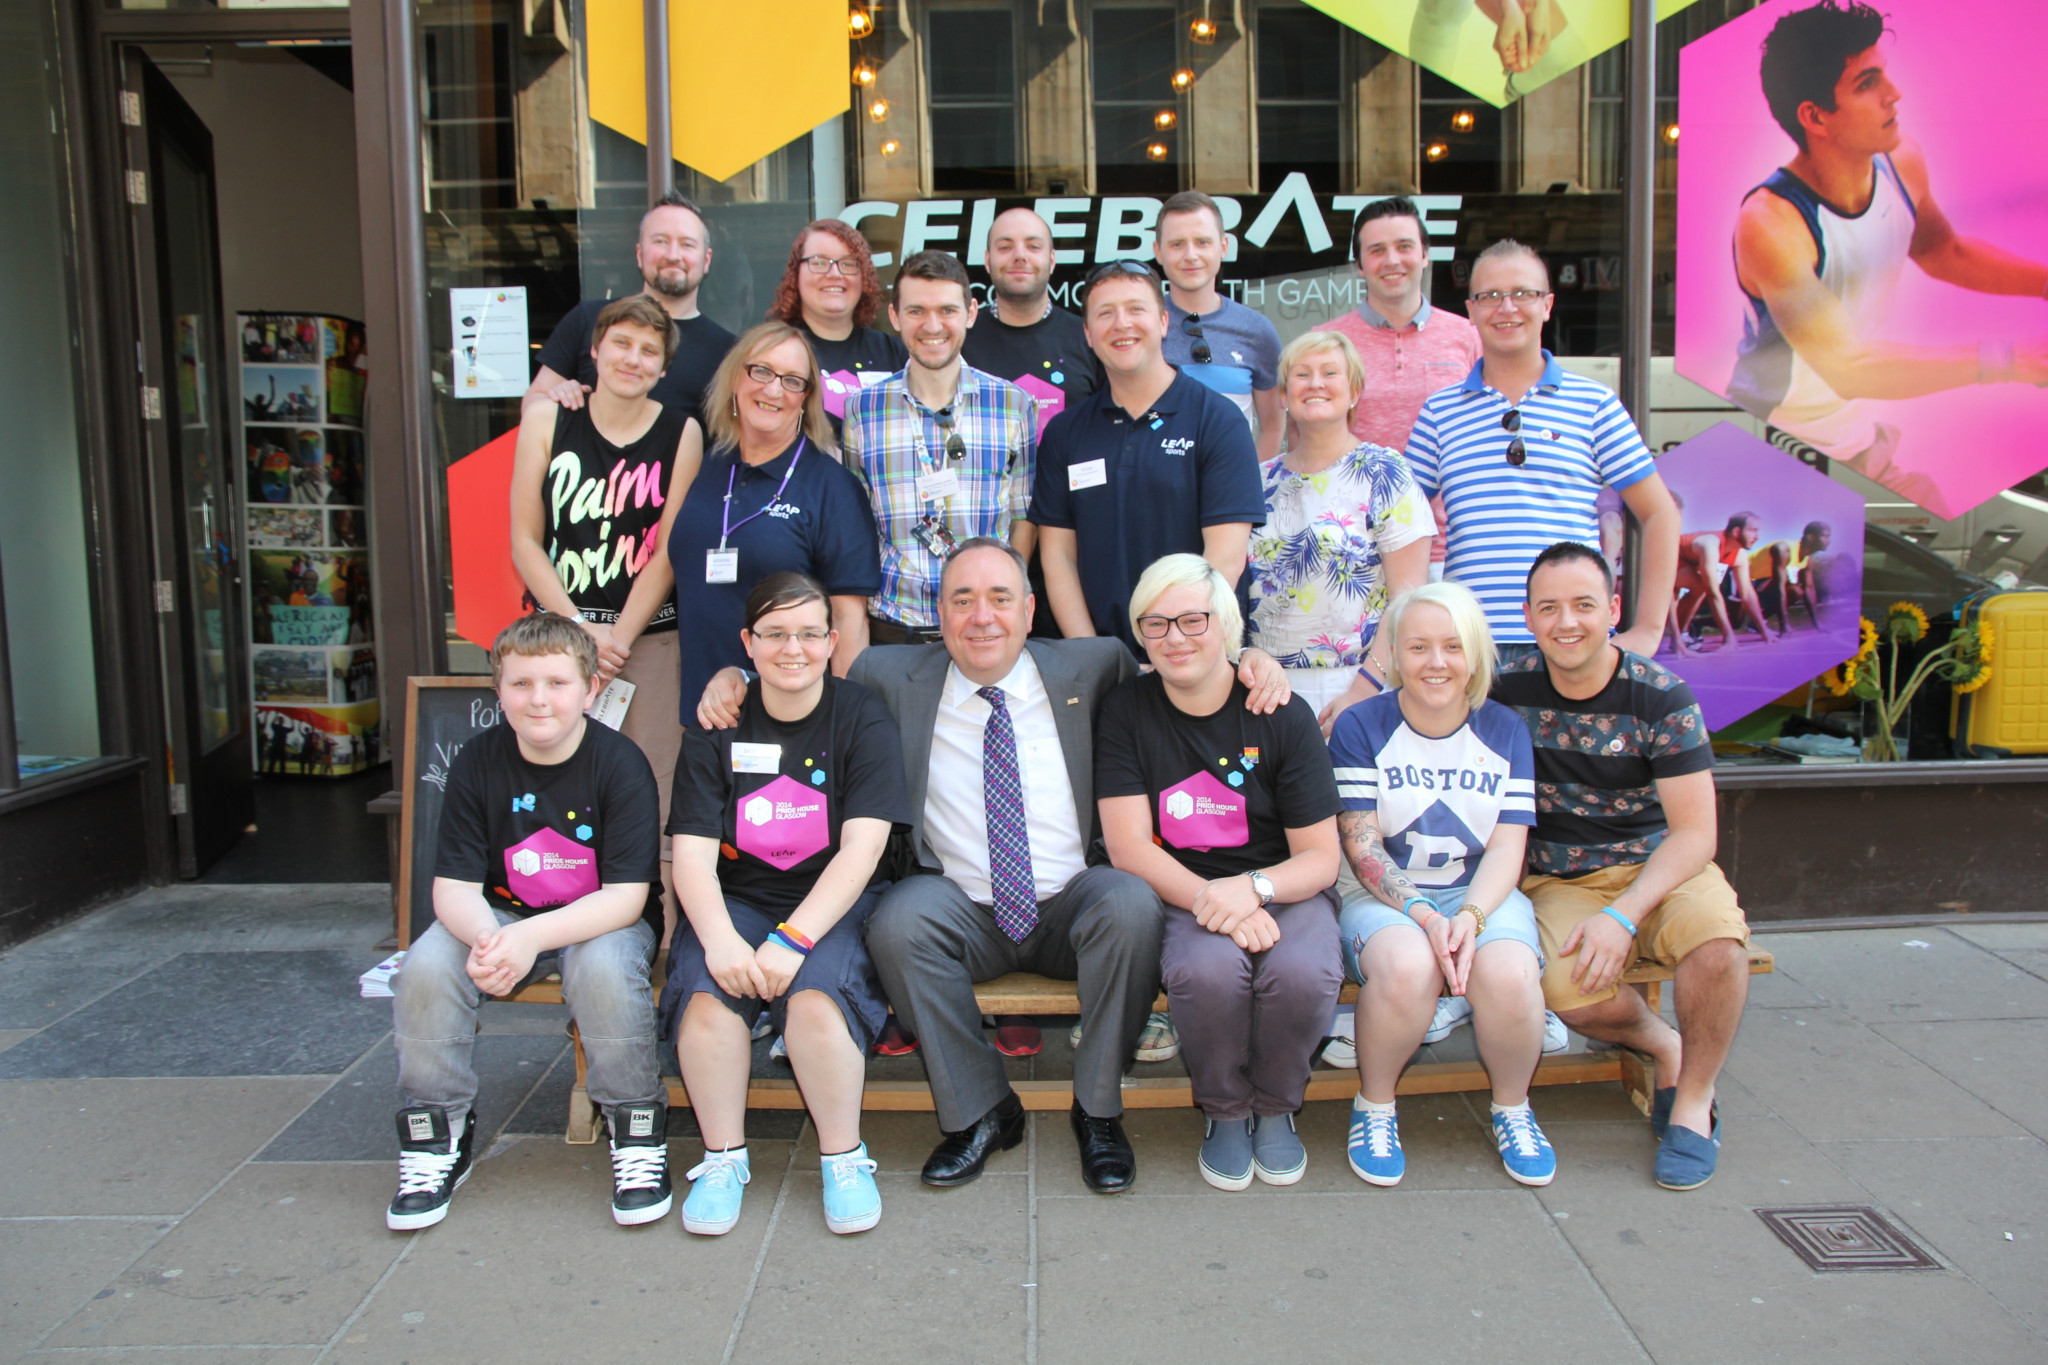 Then First Minister Alex Salmond met volunteers, guests and visitors at Pride House during the 2014 Commonwealth Games in Glasgow ©LEAP Sports